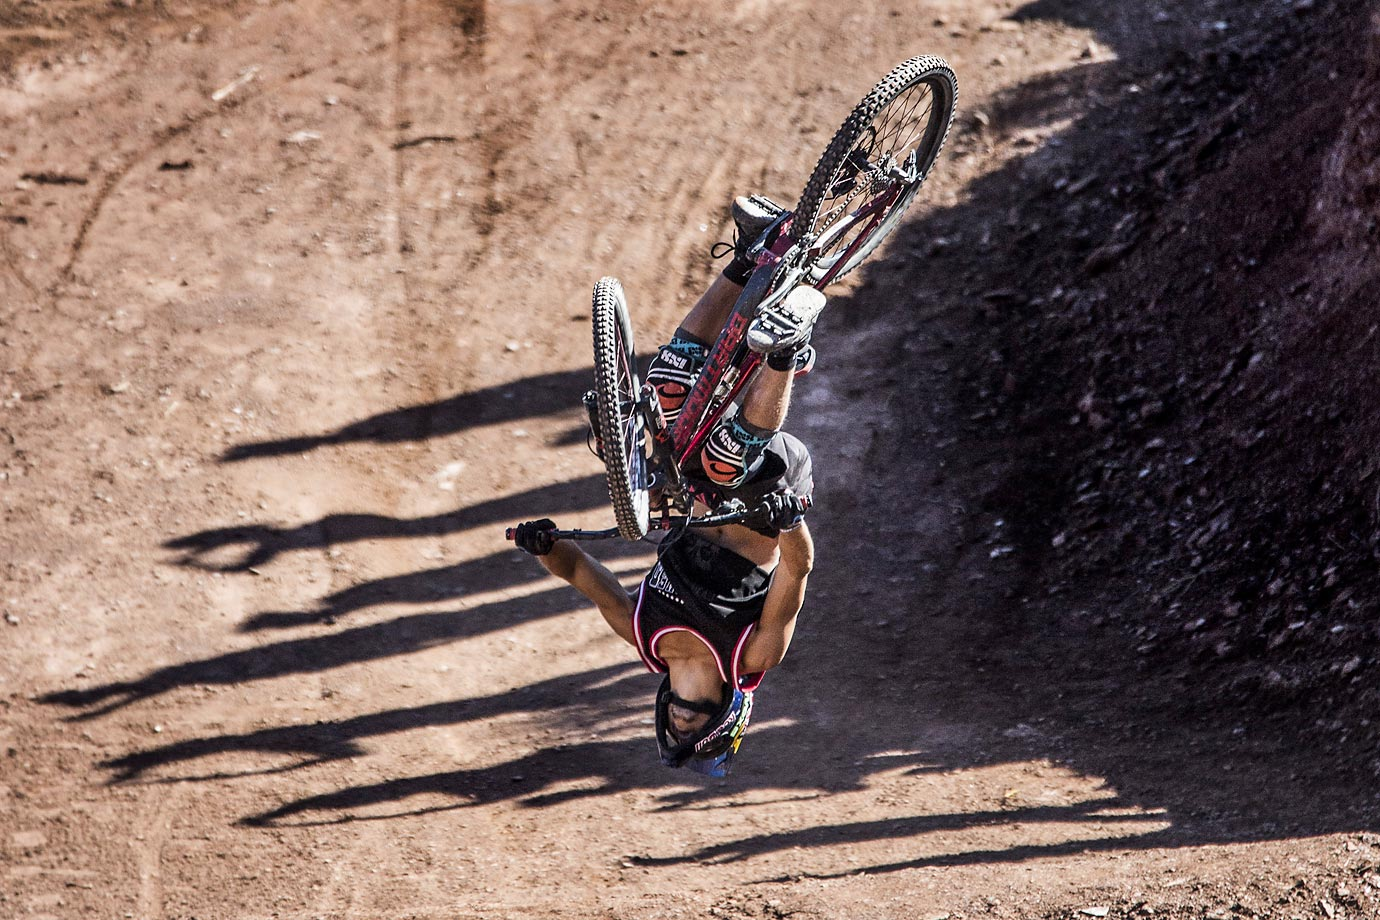 Szymon Godziek of Poland back flips the Canyon Gap.